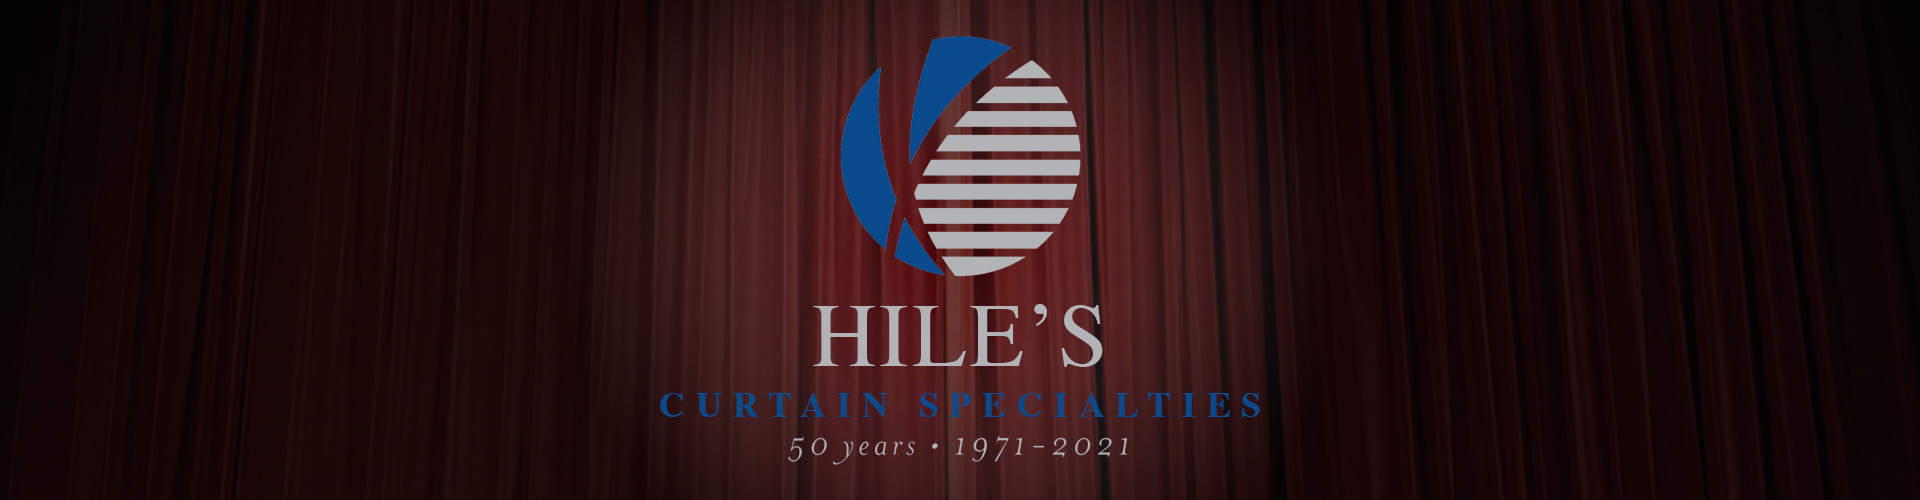 Hiles Curtains Specialties